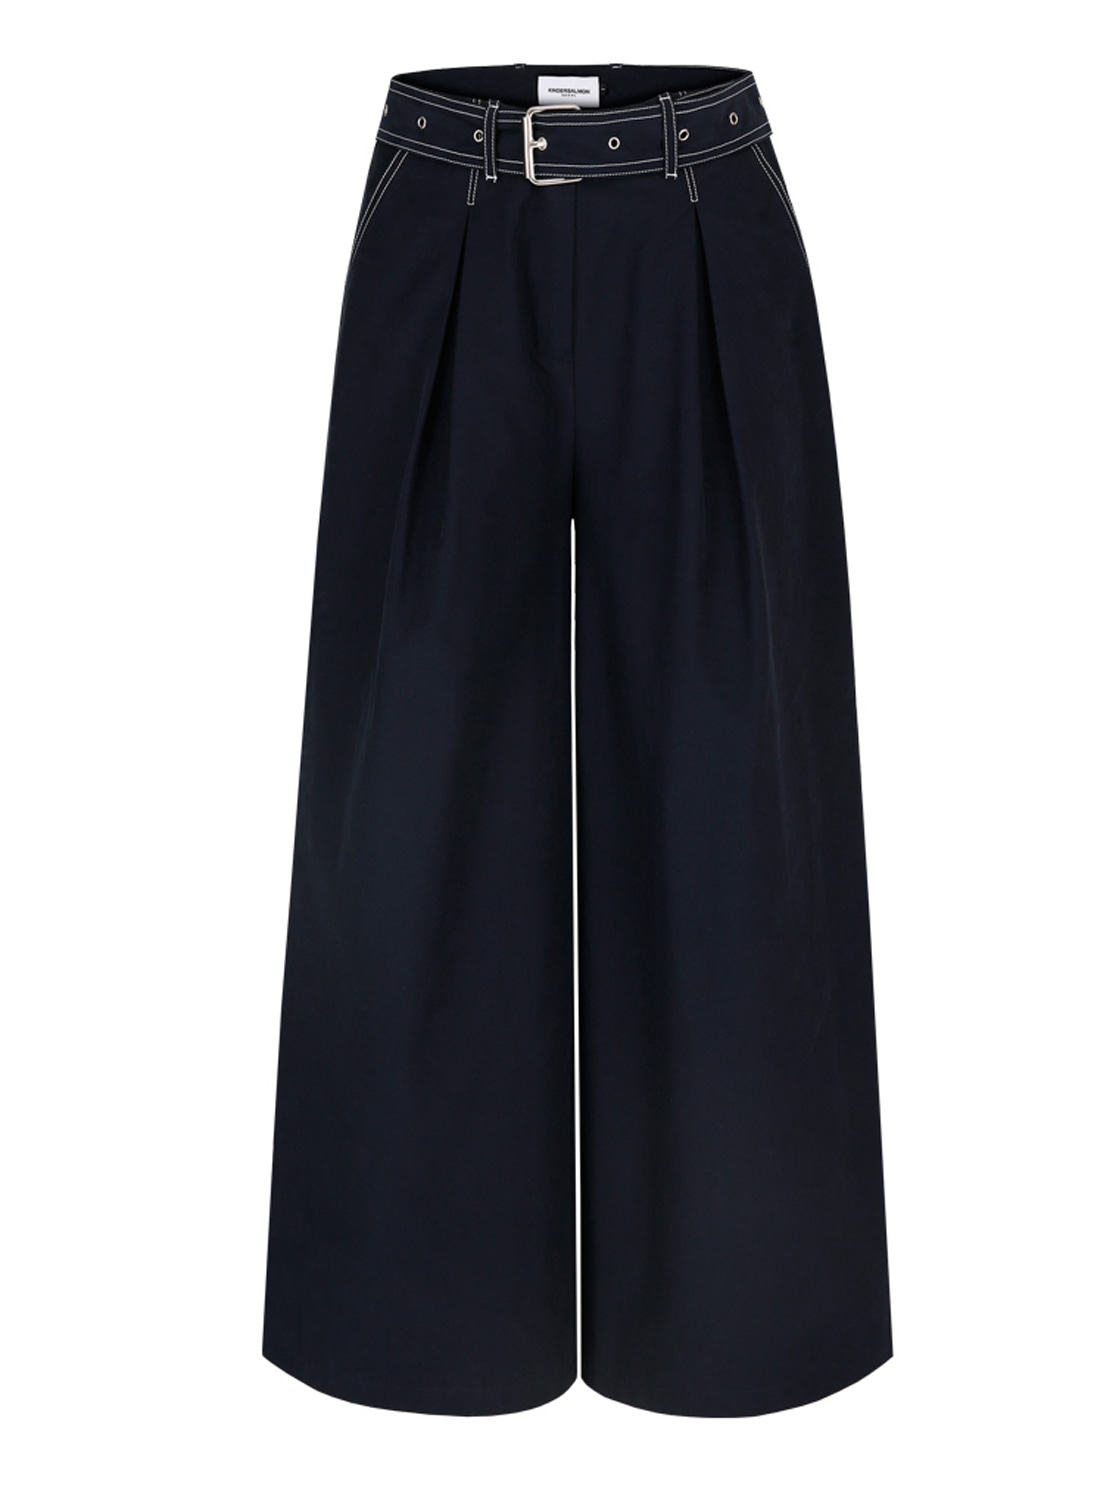 SS18 BELTED CULOTTES NAVY